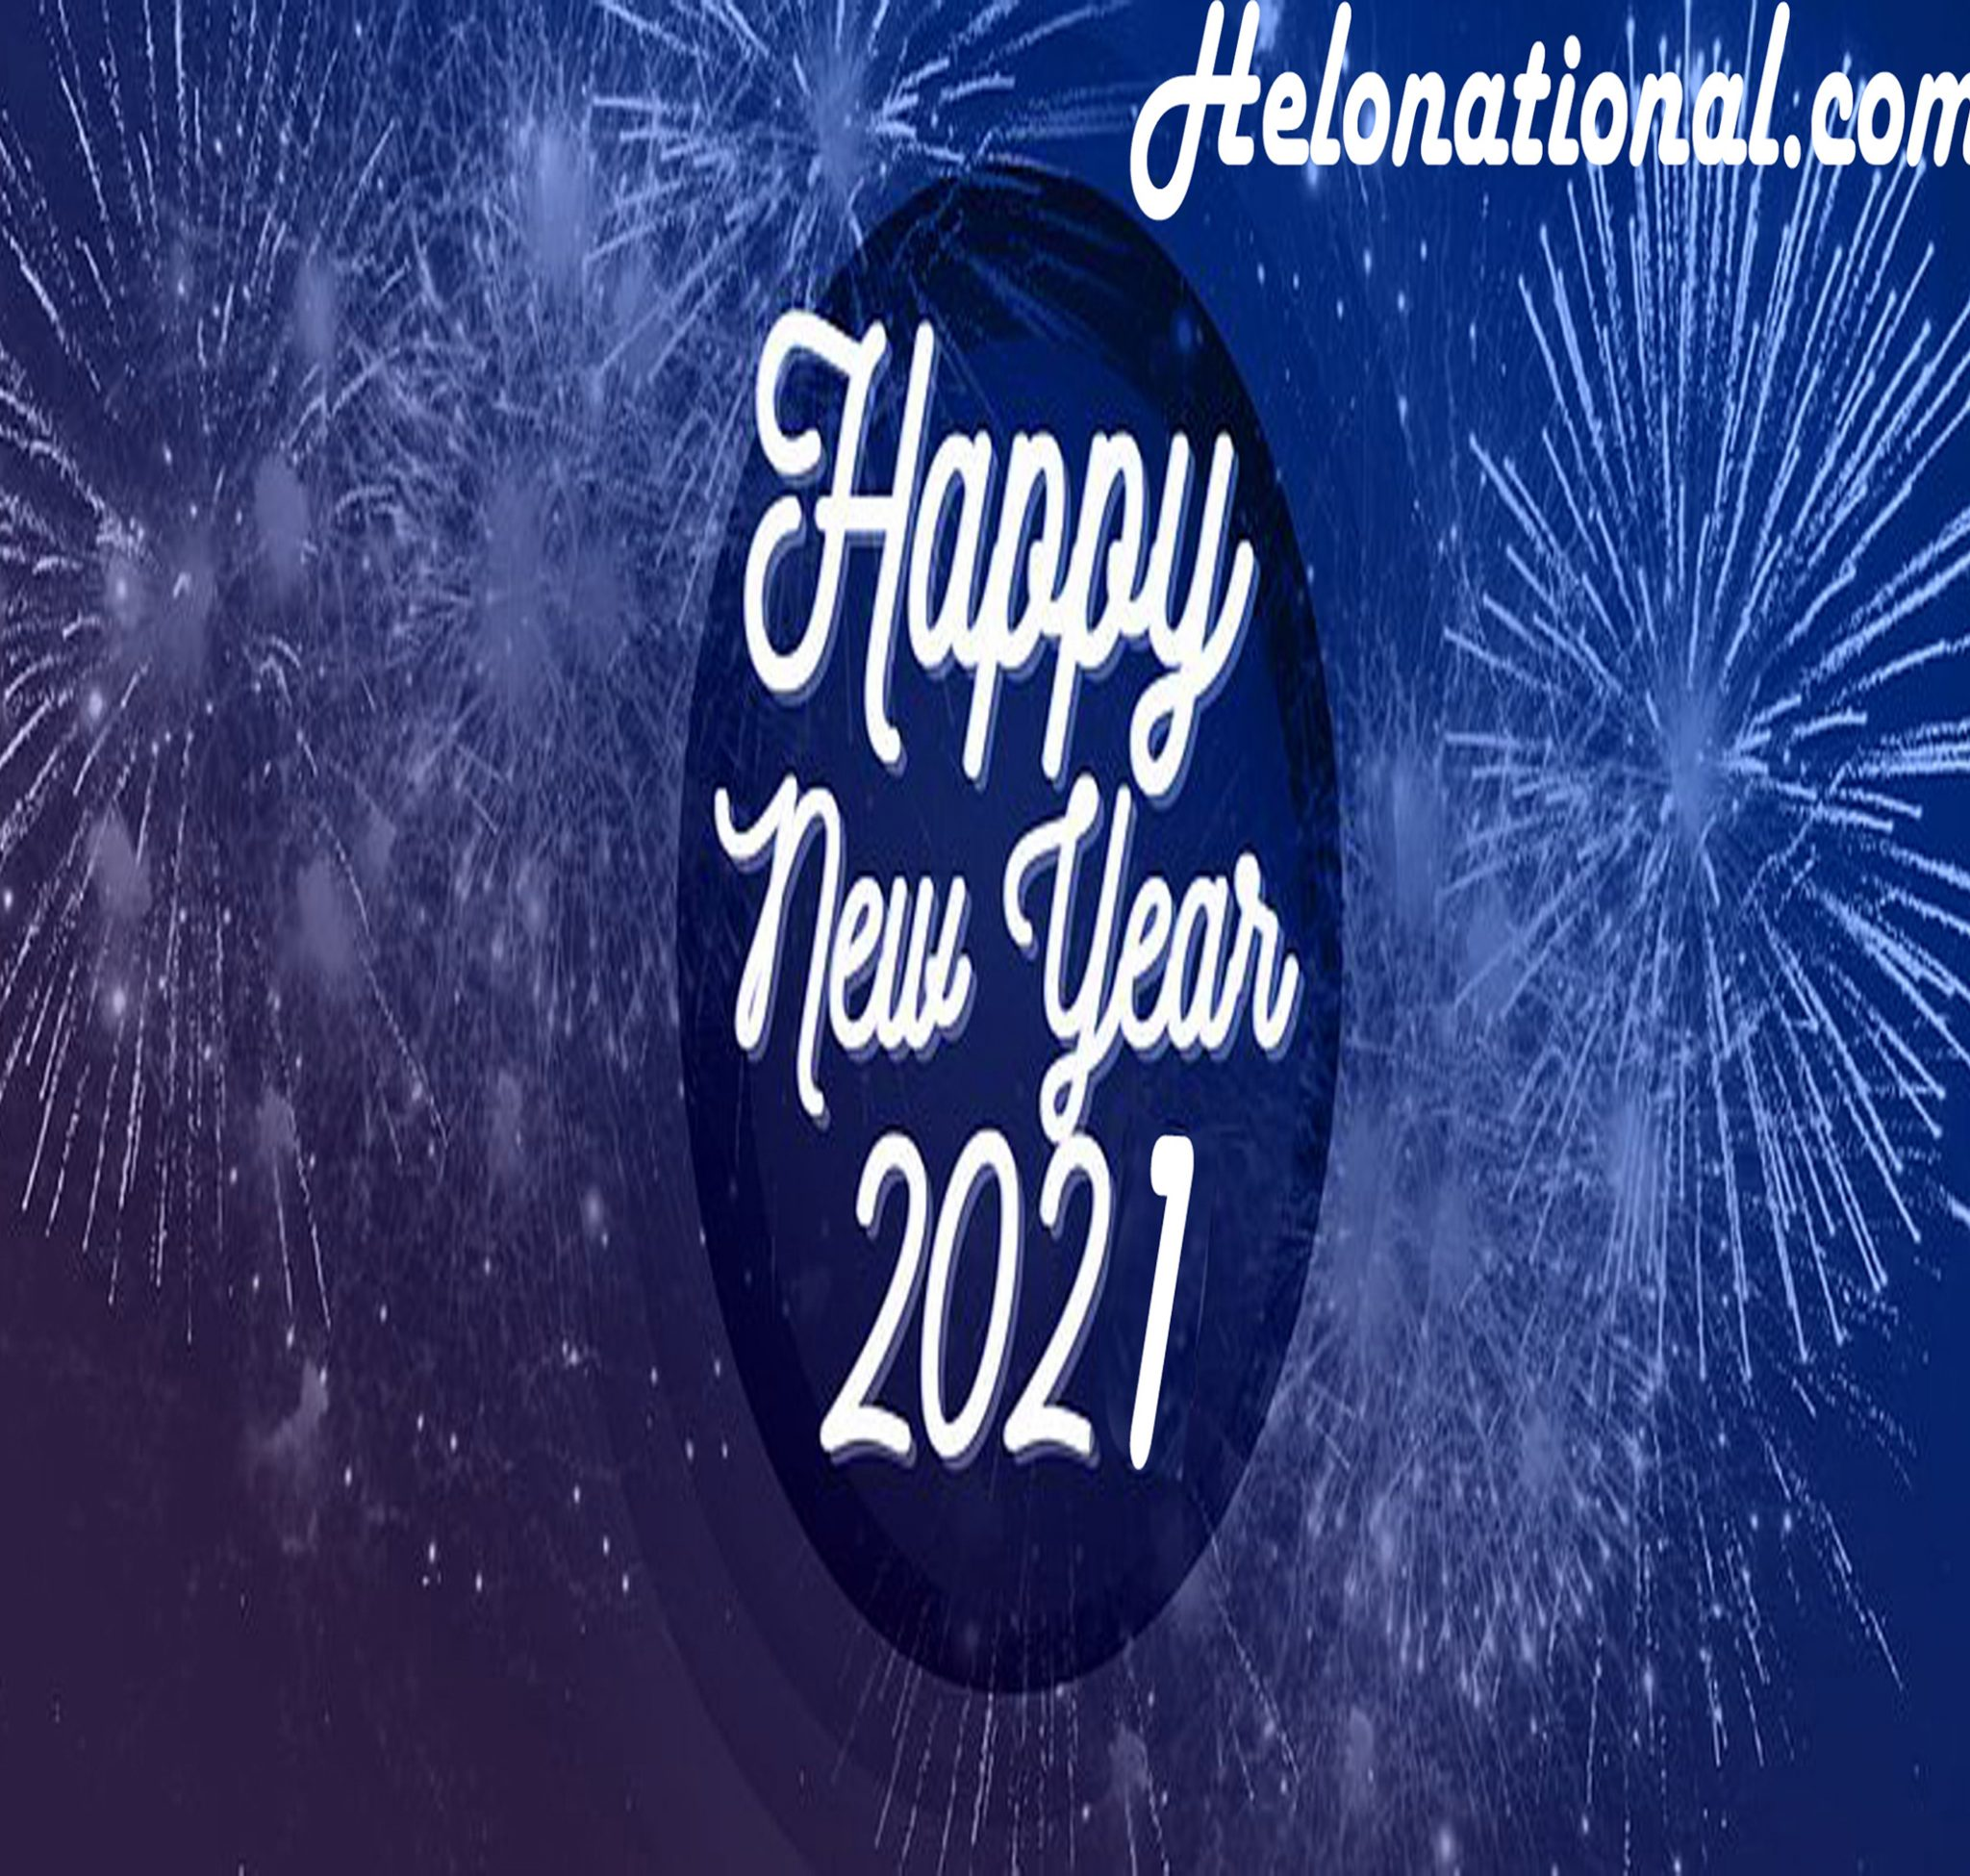 hny 2021 hd images 1